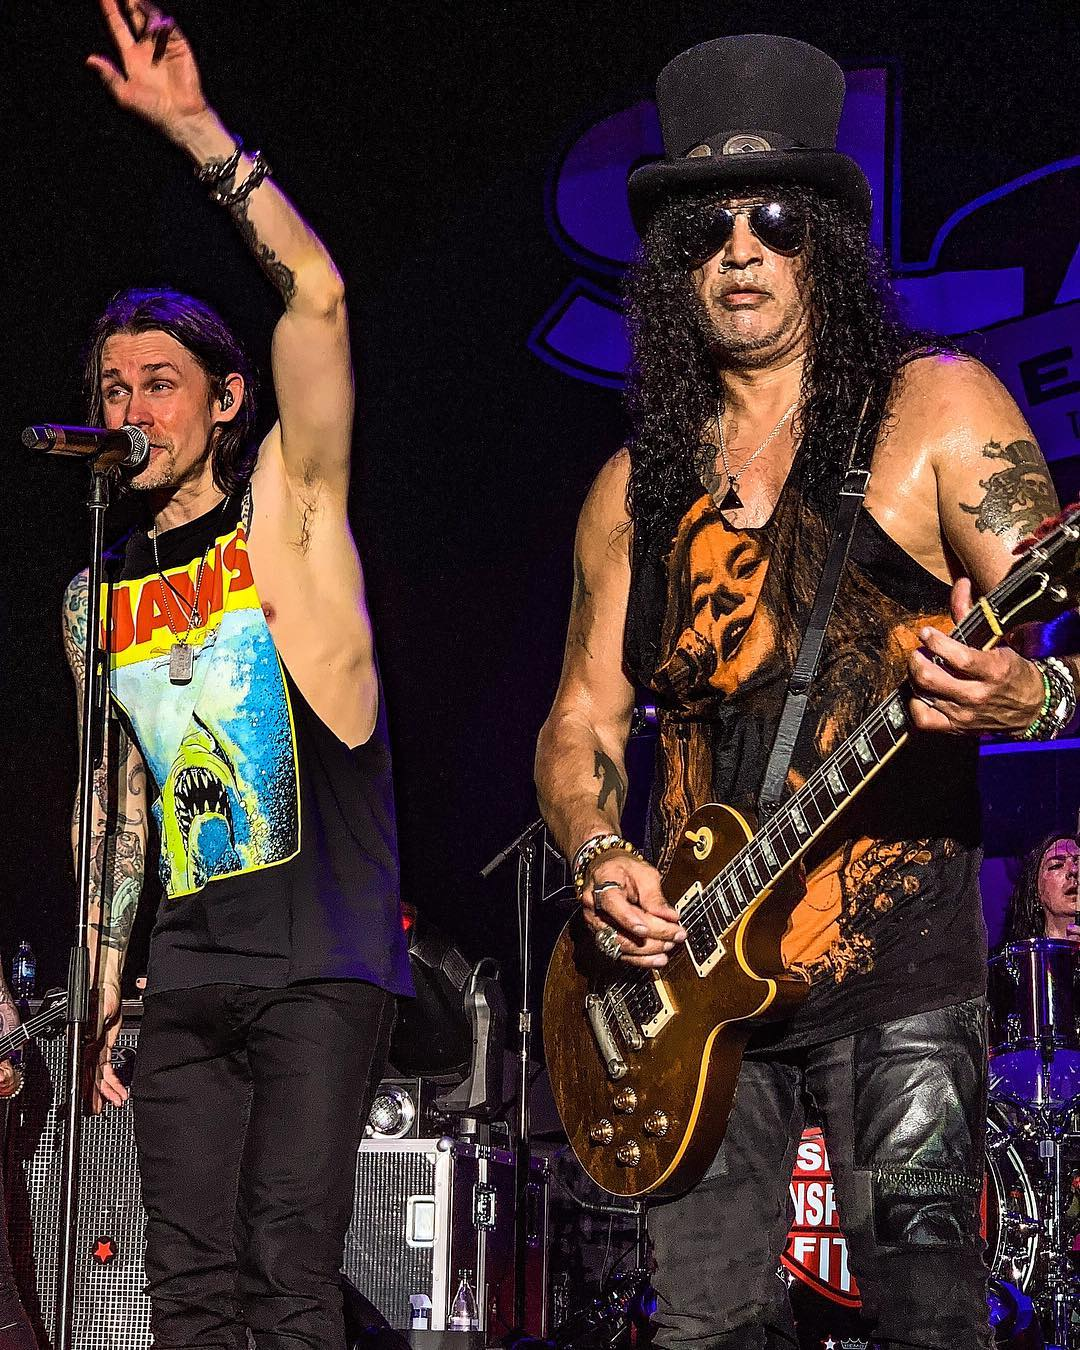 Slash france singapour asia smkc living the dream world tour 2019 myles kennedy coliseum hard rock hotel